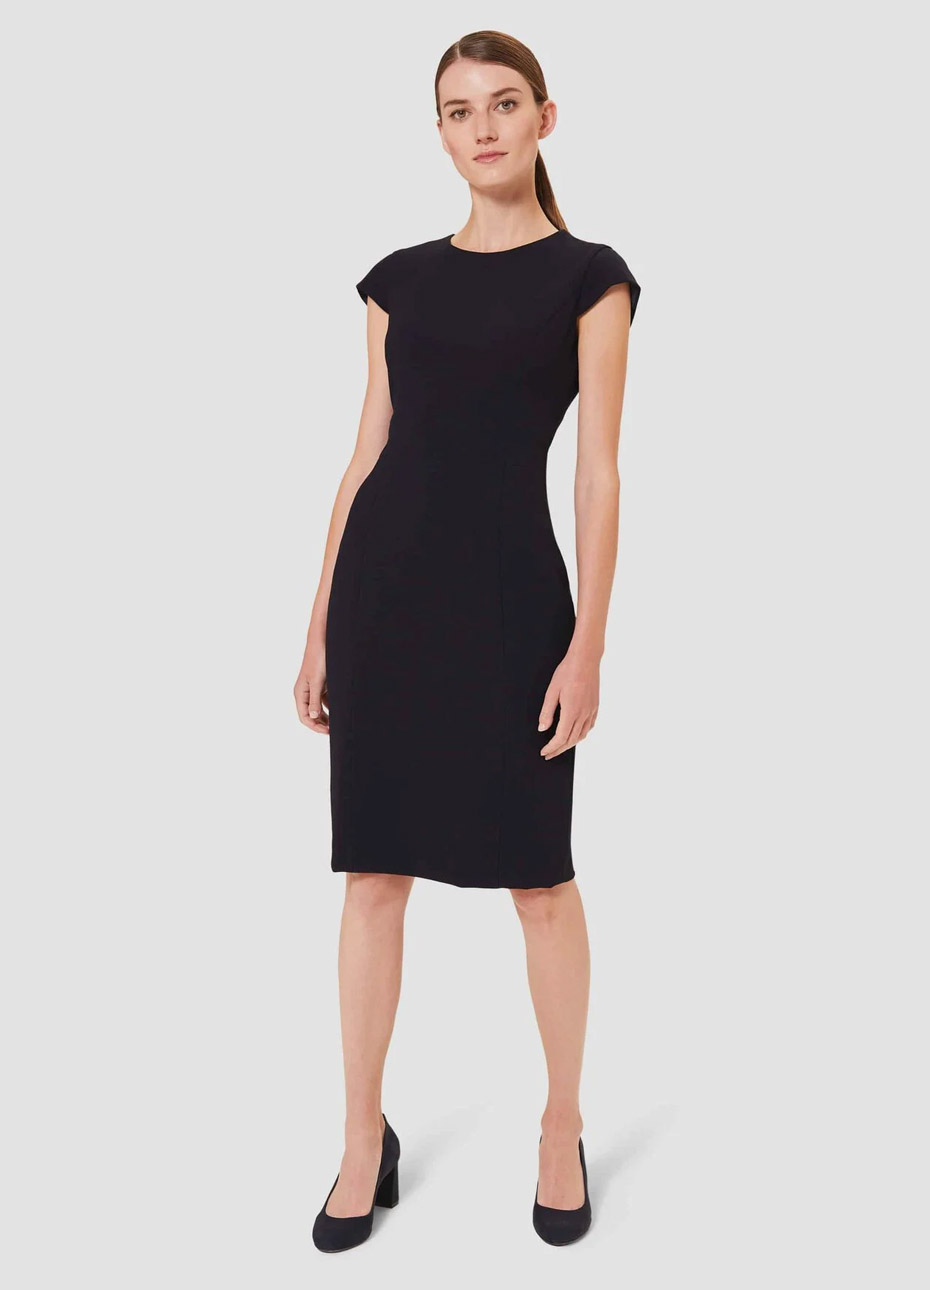 Black shift dress worn with block heeled court shoes in black, by Hobbs.